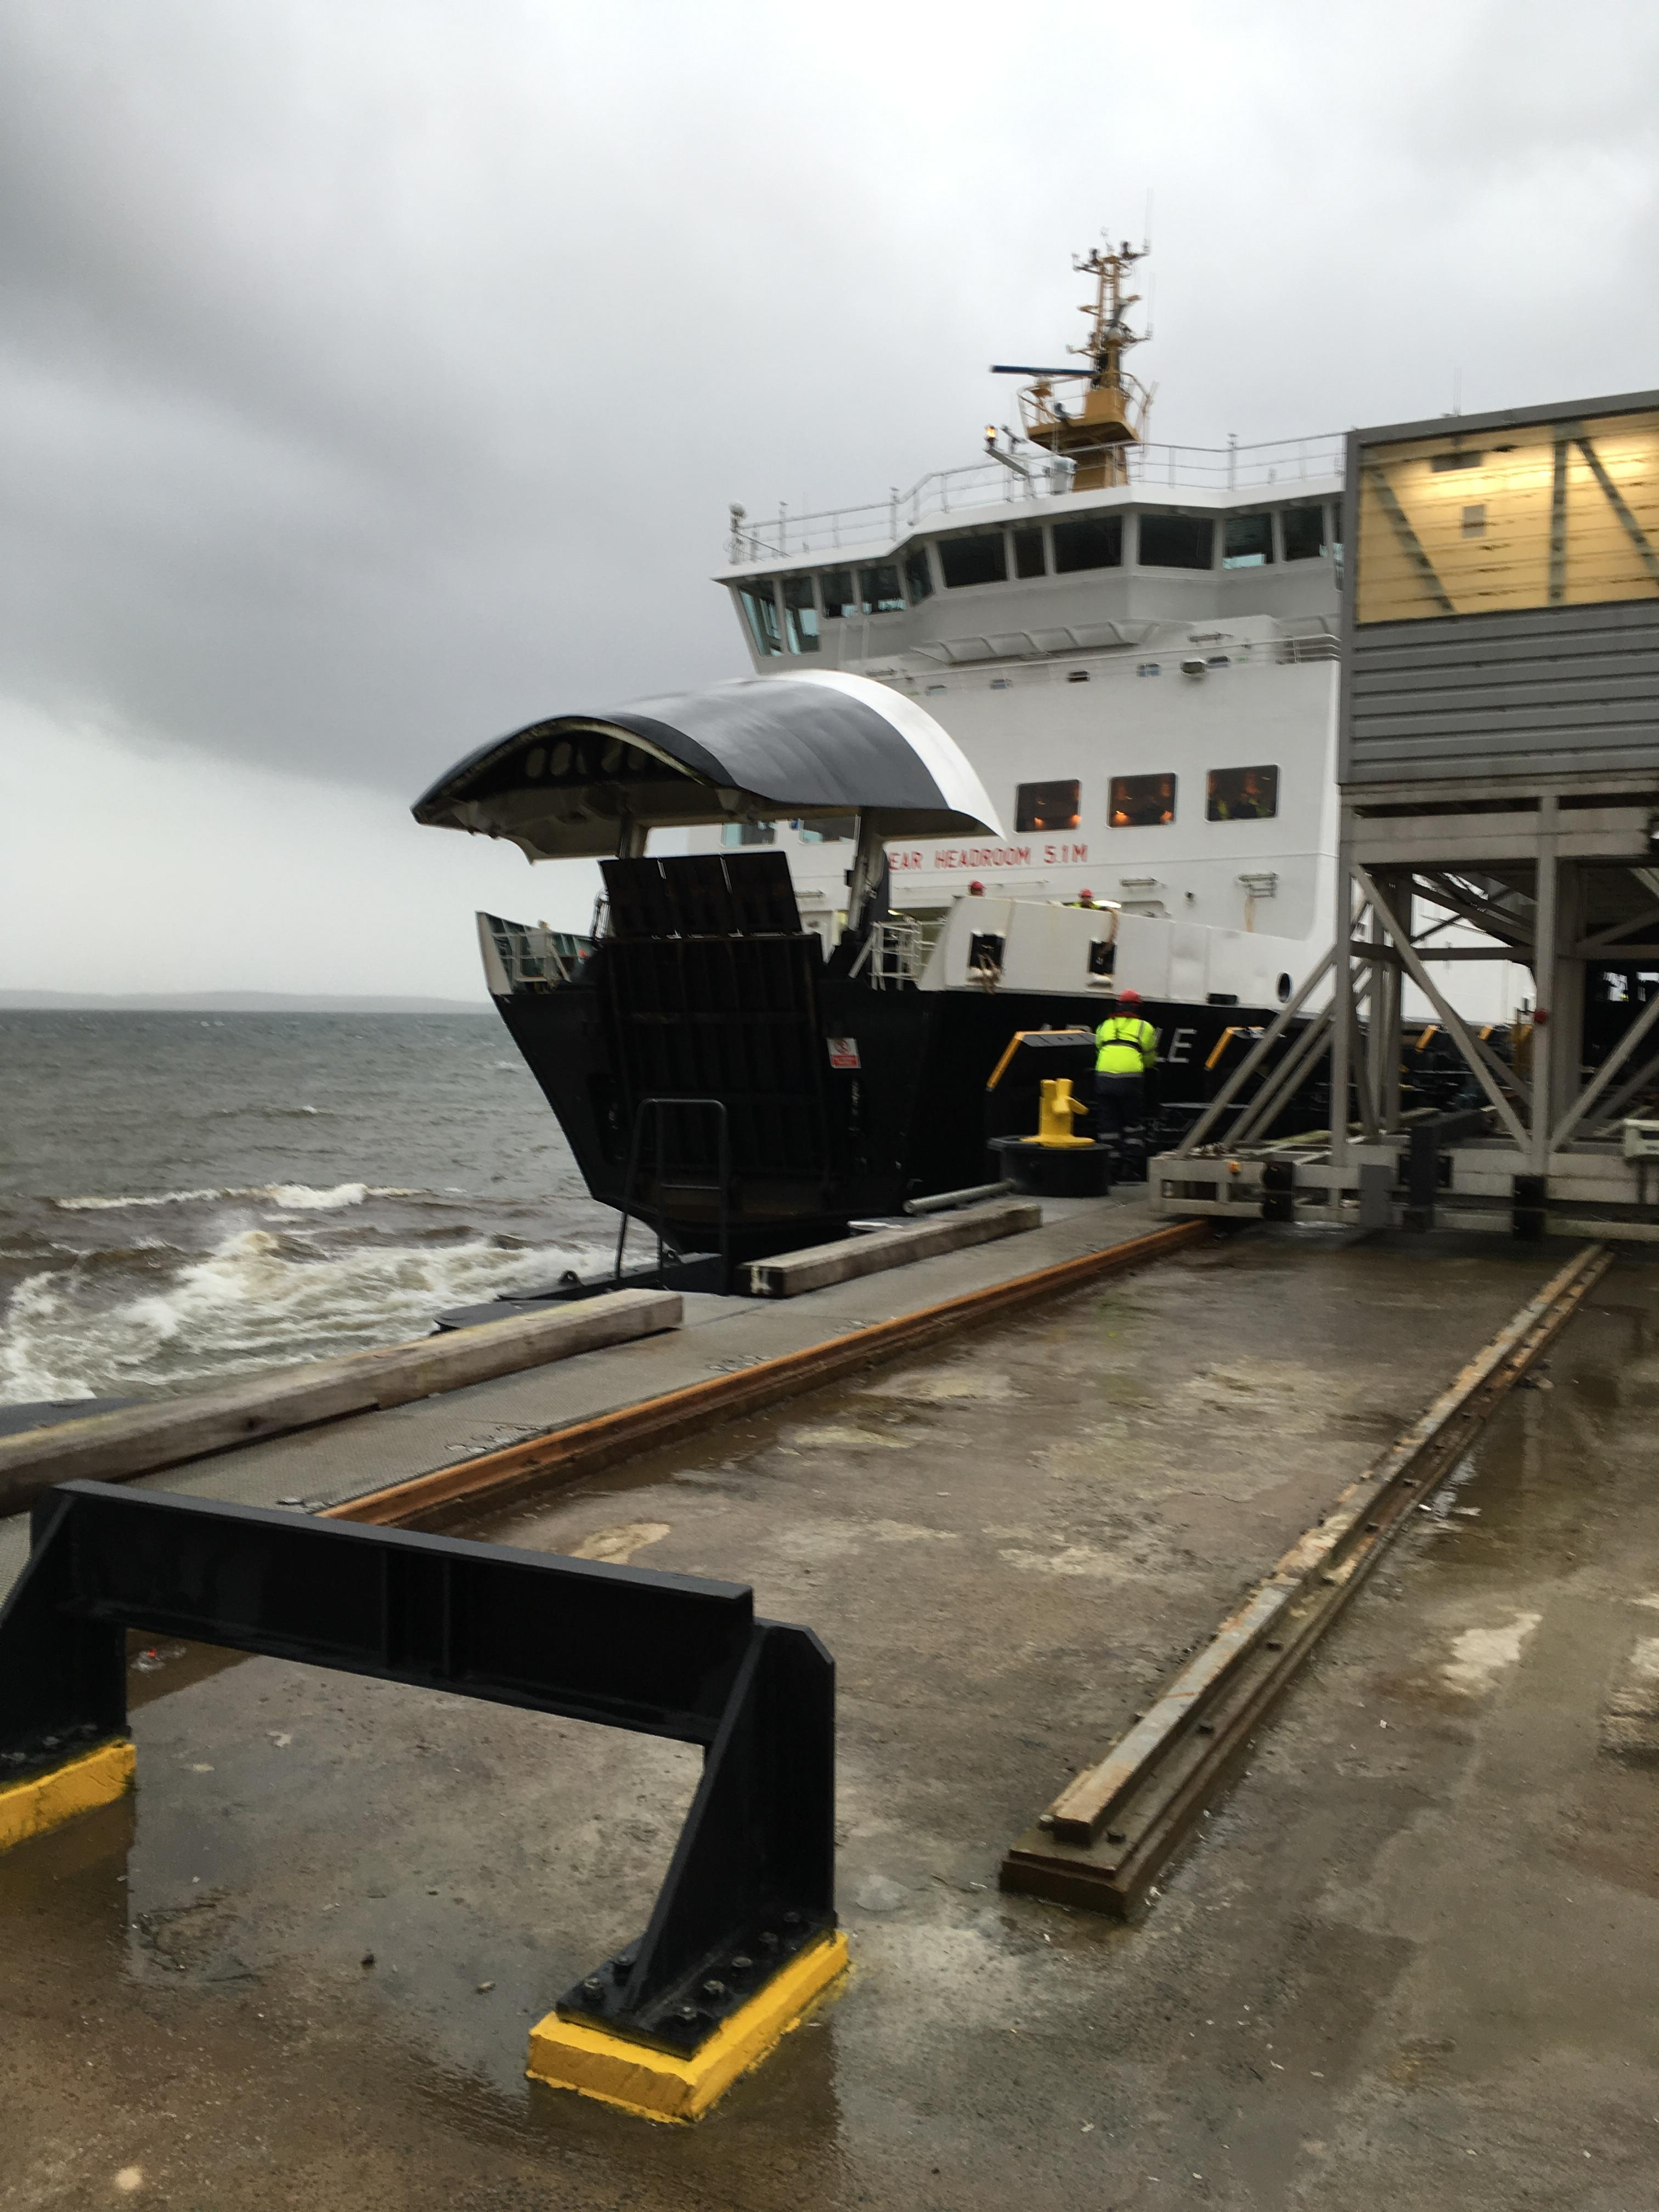 MV Argyle arrives at Wemyss Bay during Storm Barbara